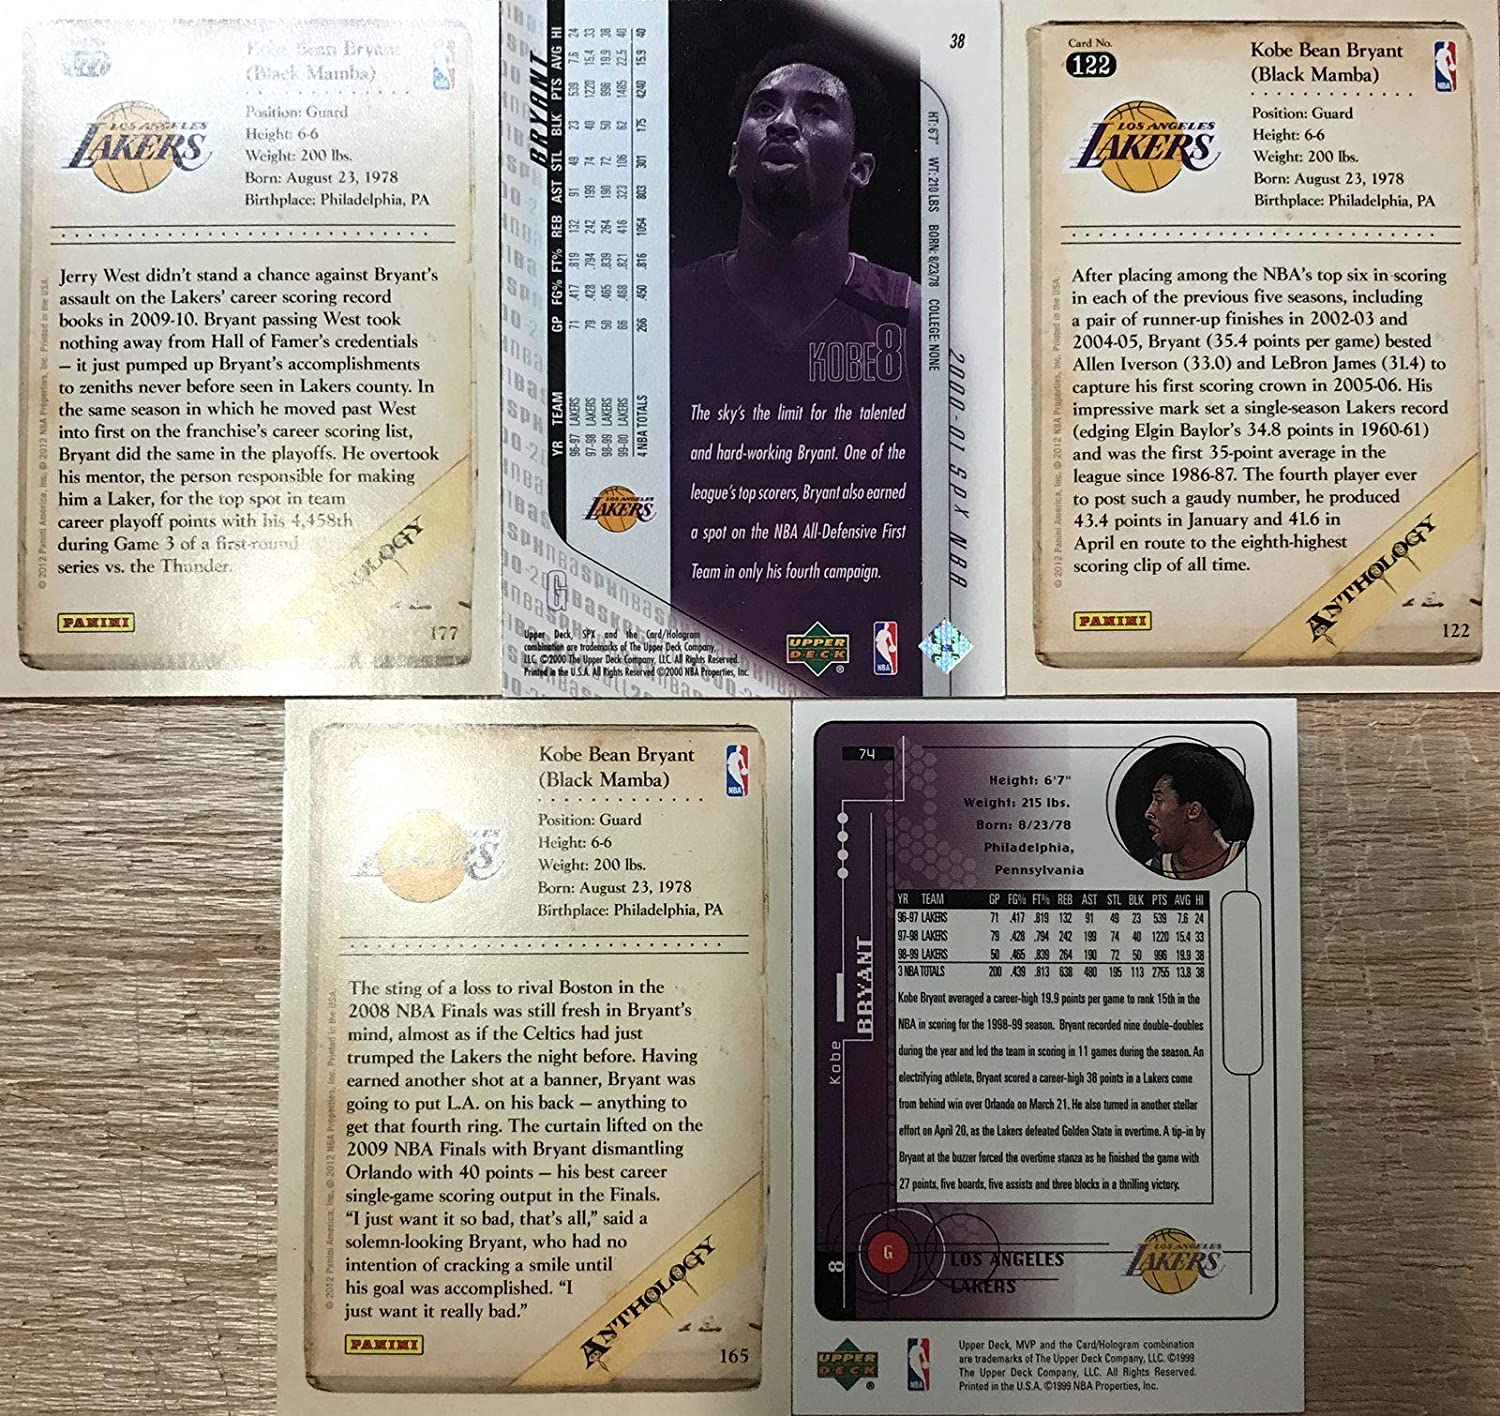 Kobe Bryant 5 Card Gift Lot including MVP SPx and Anthology Cards Showing This Los Angeles Lakers Star in His Gold and Purple Jersey